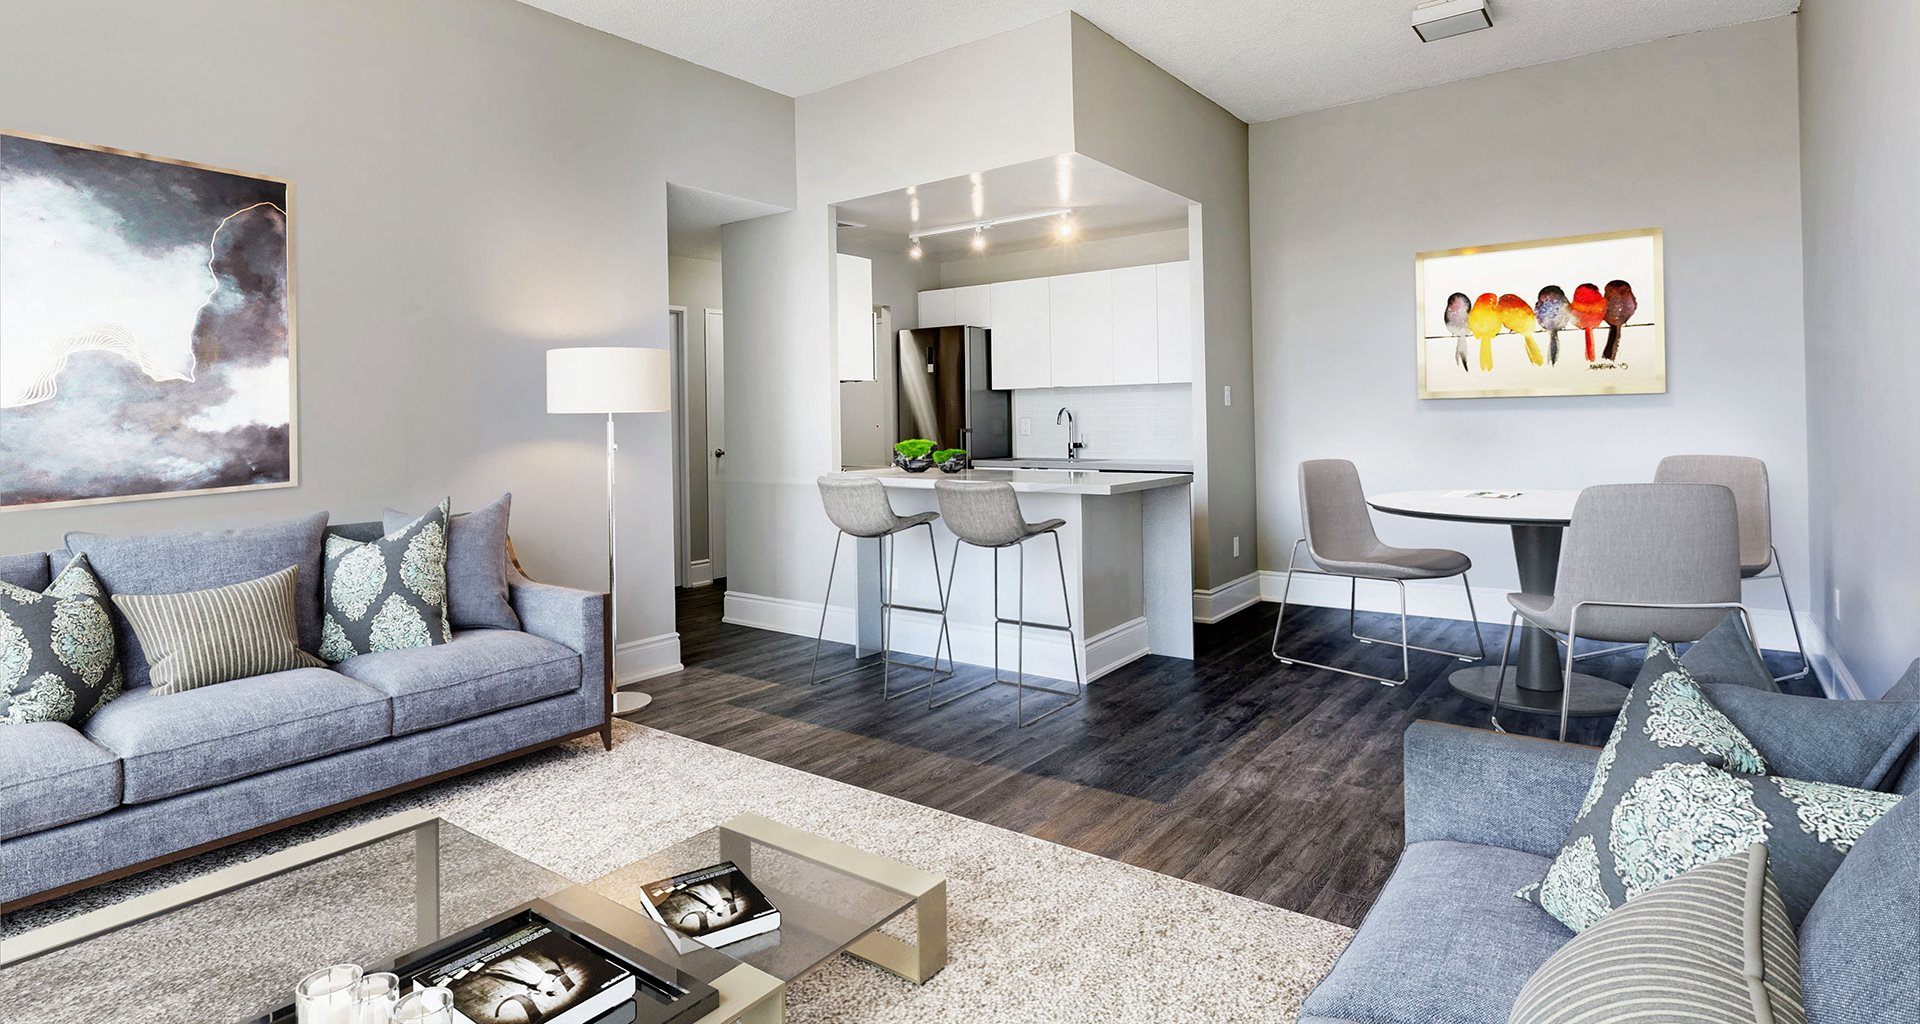 Floor Plans Of Lucliff Place Apartments In Toronto On